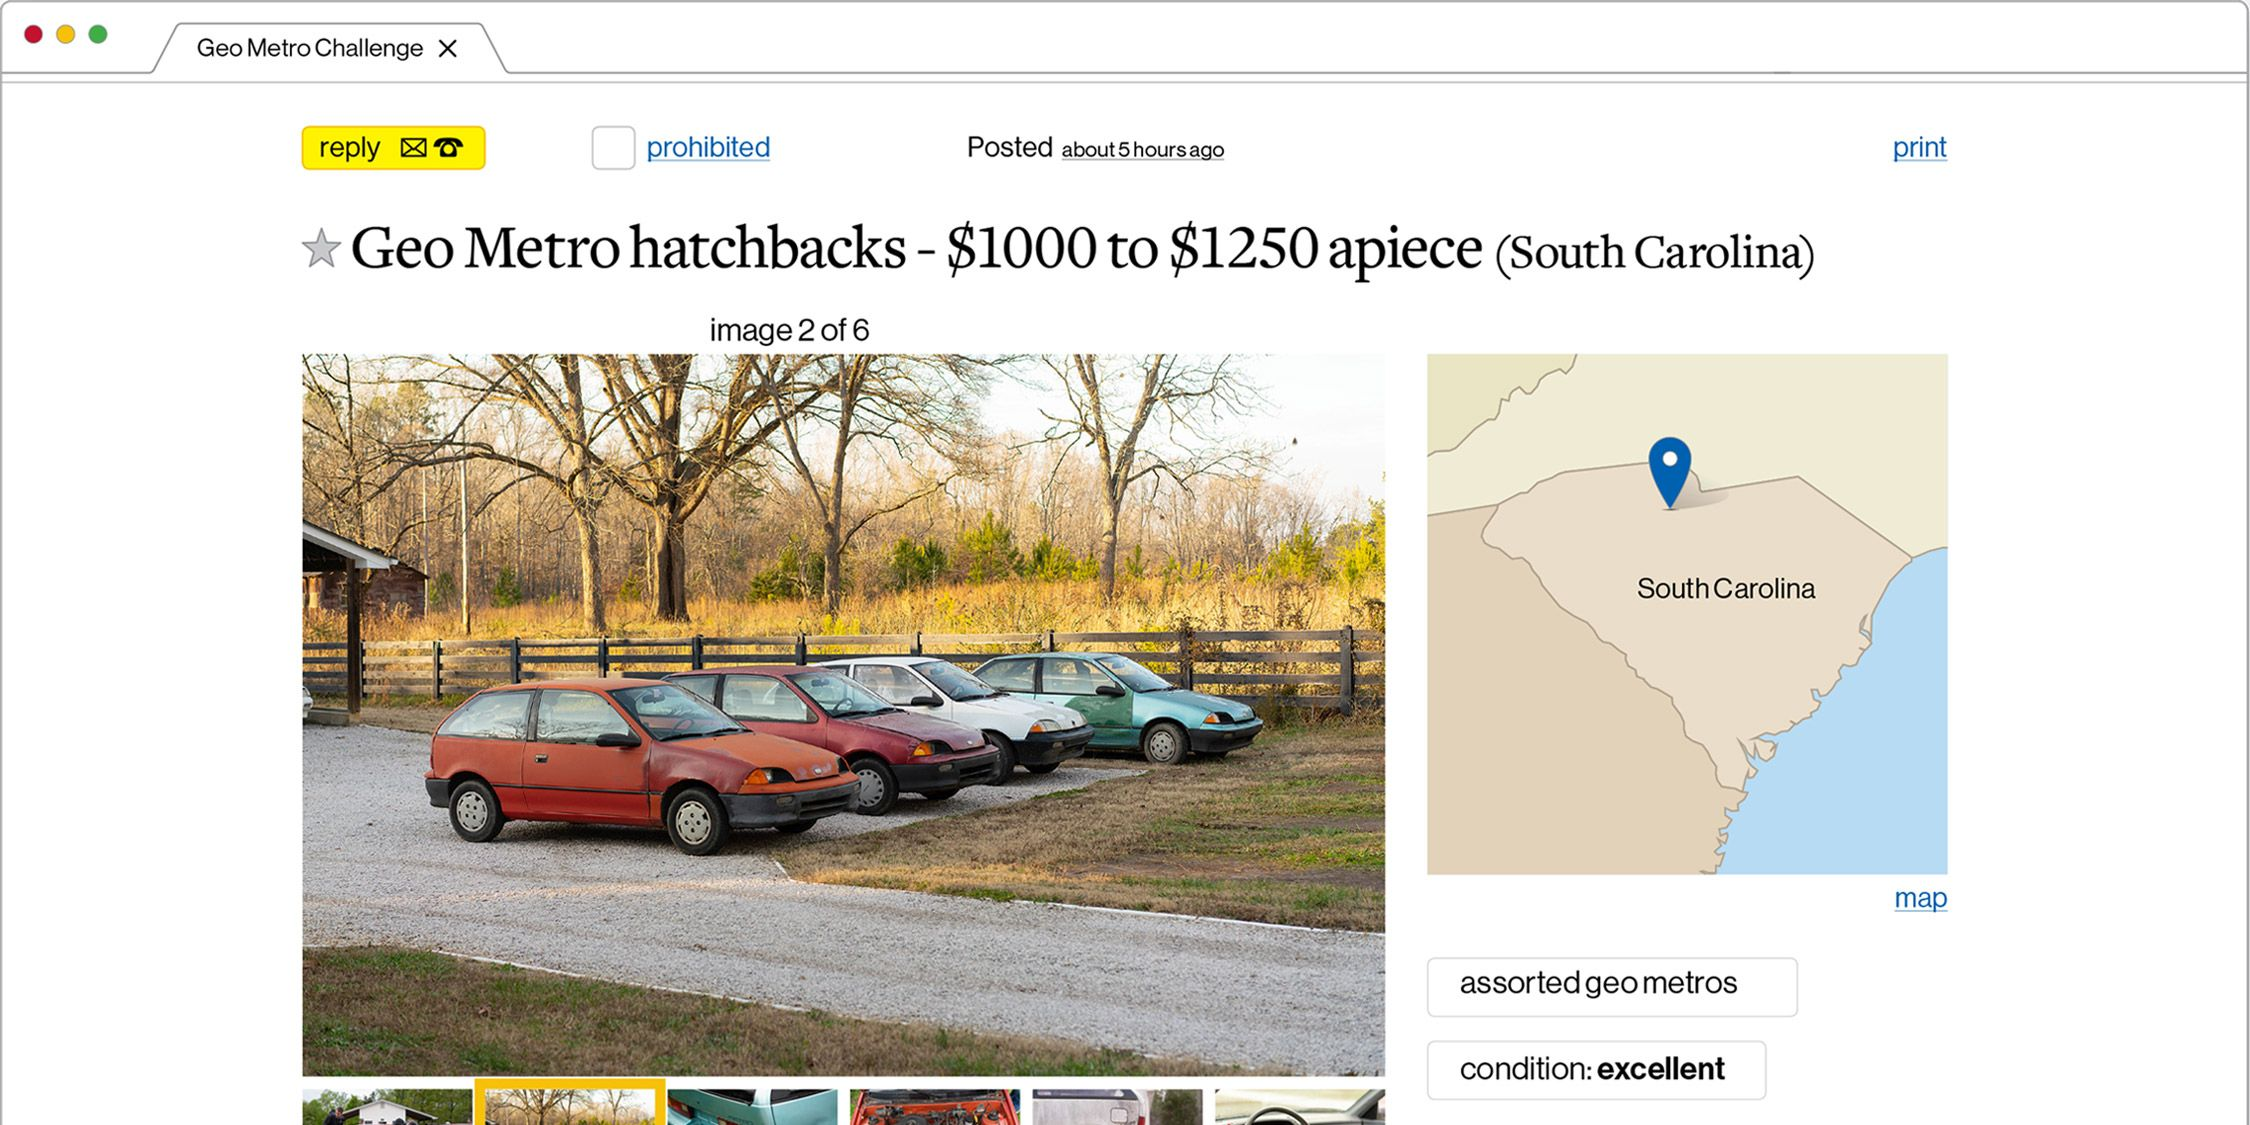 https://www caranddriver com/features/a22533828/battle-of-the-beaters-v-the-geo-metro-craigslist-cup/